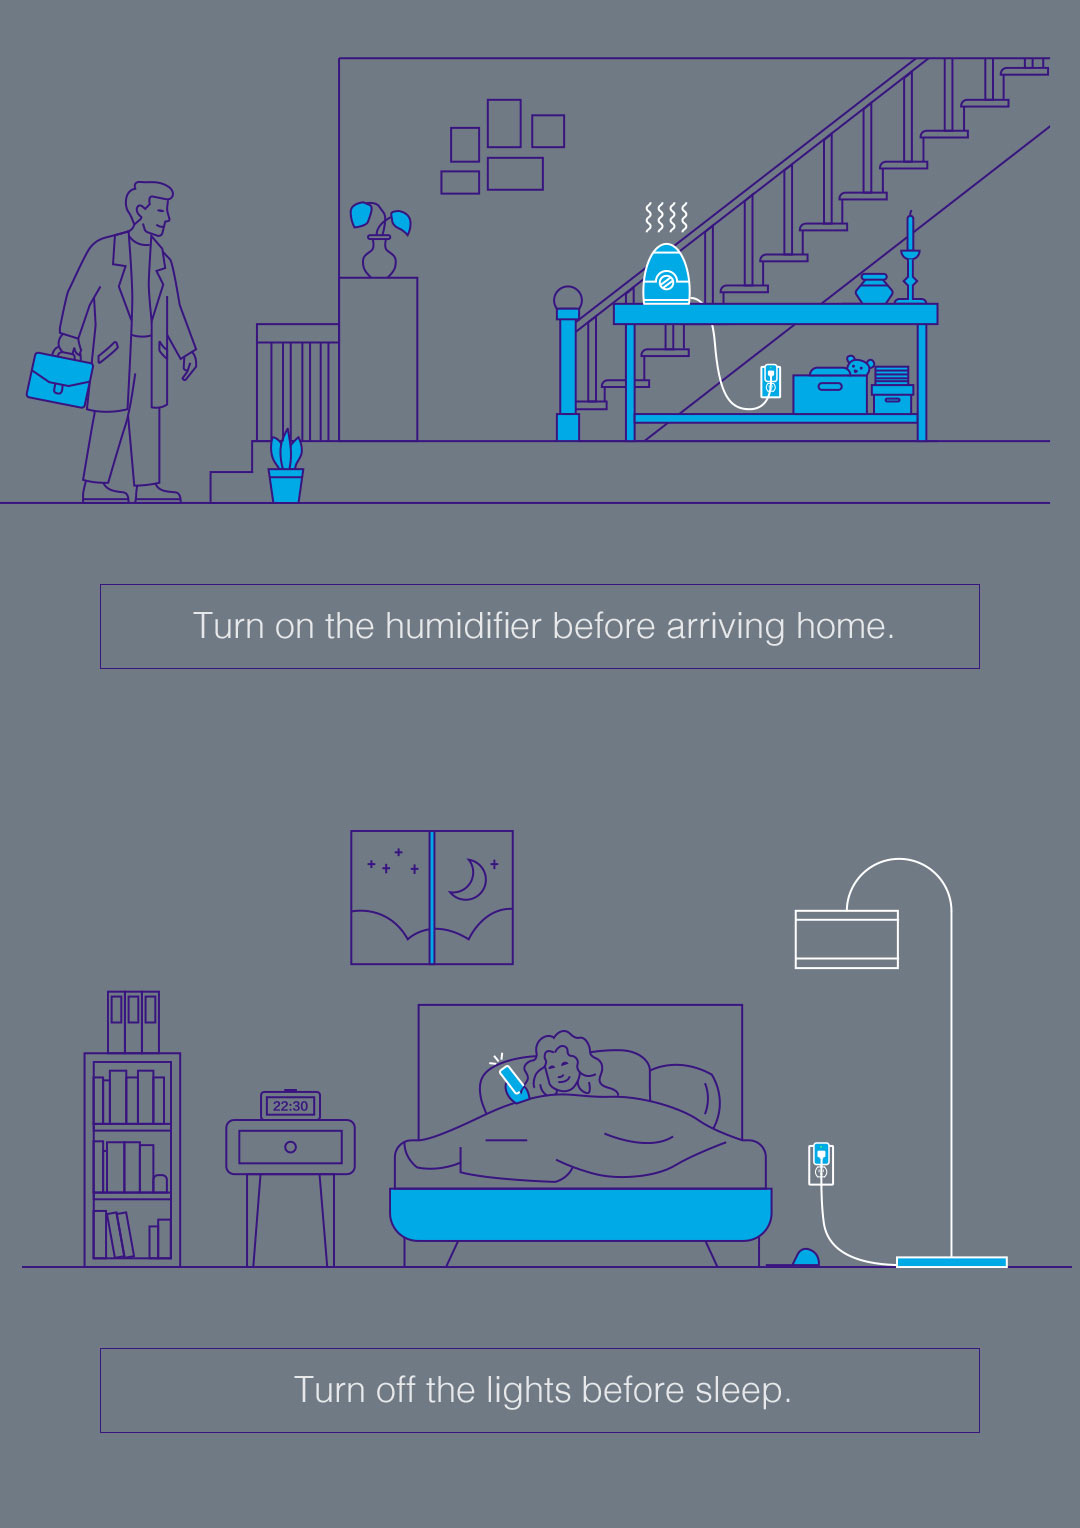 HomeKit Smart outlet: turn on the humidifier and turn off the lights